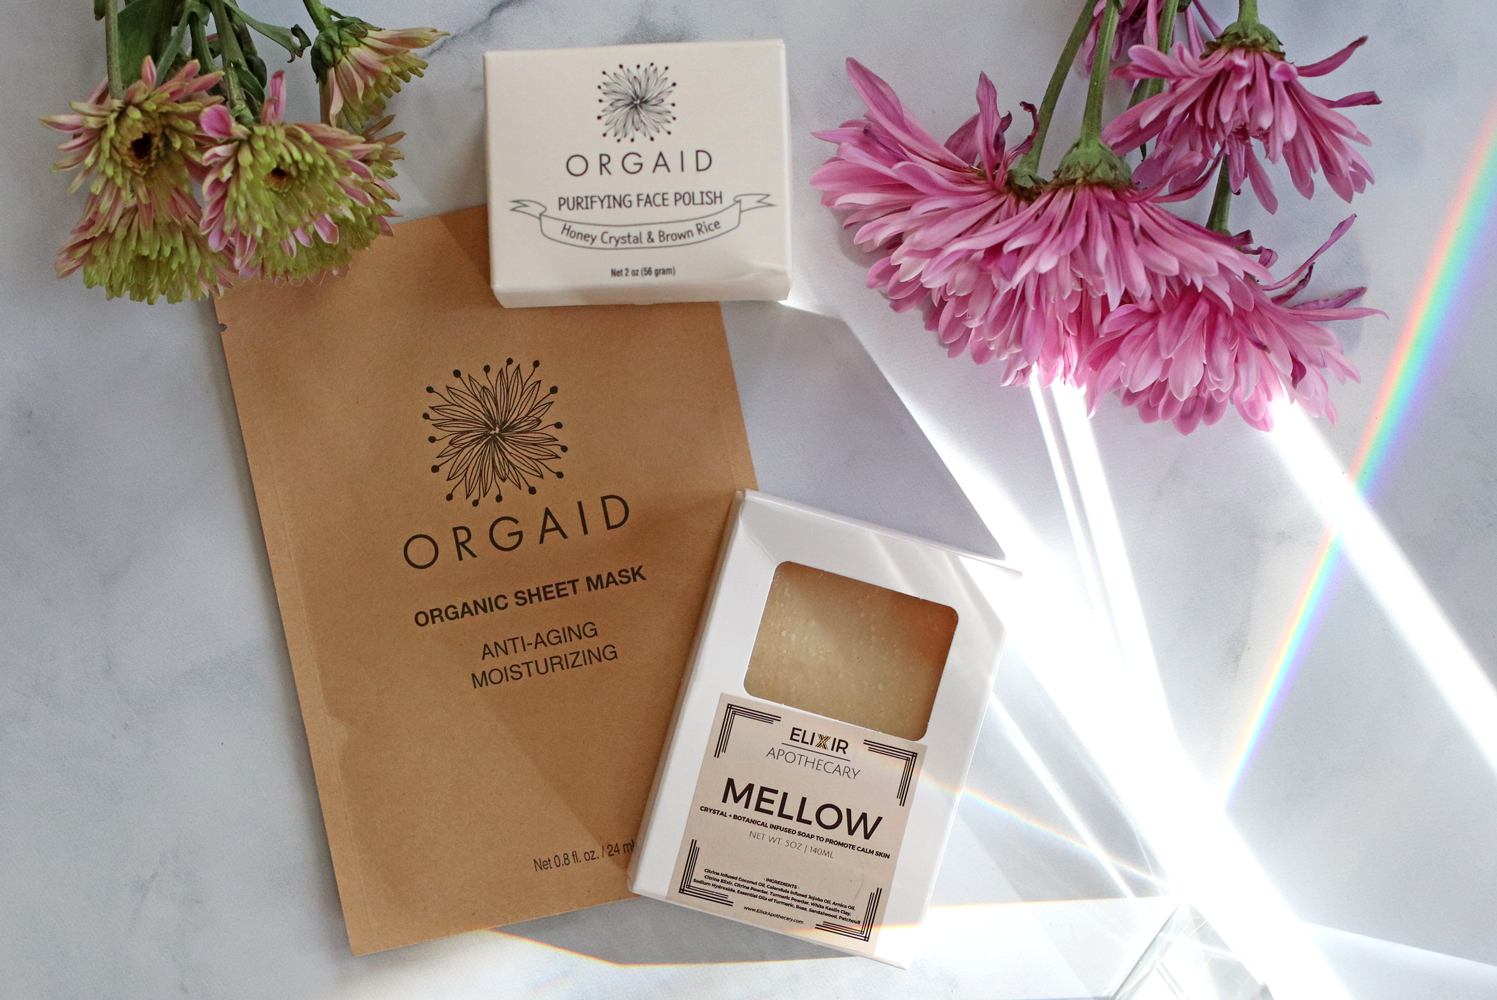 Cynaglow cruelty free and organic skincare haul